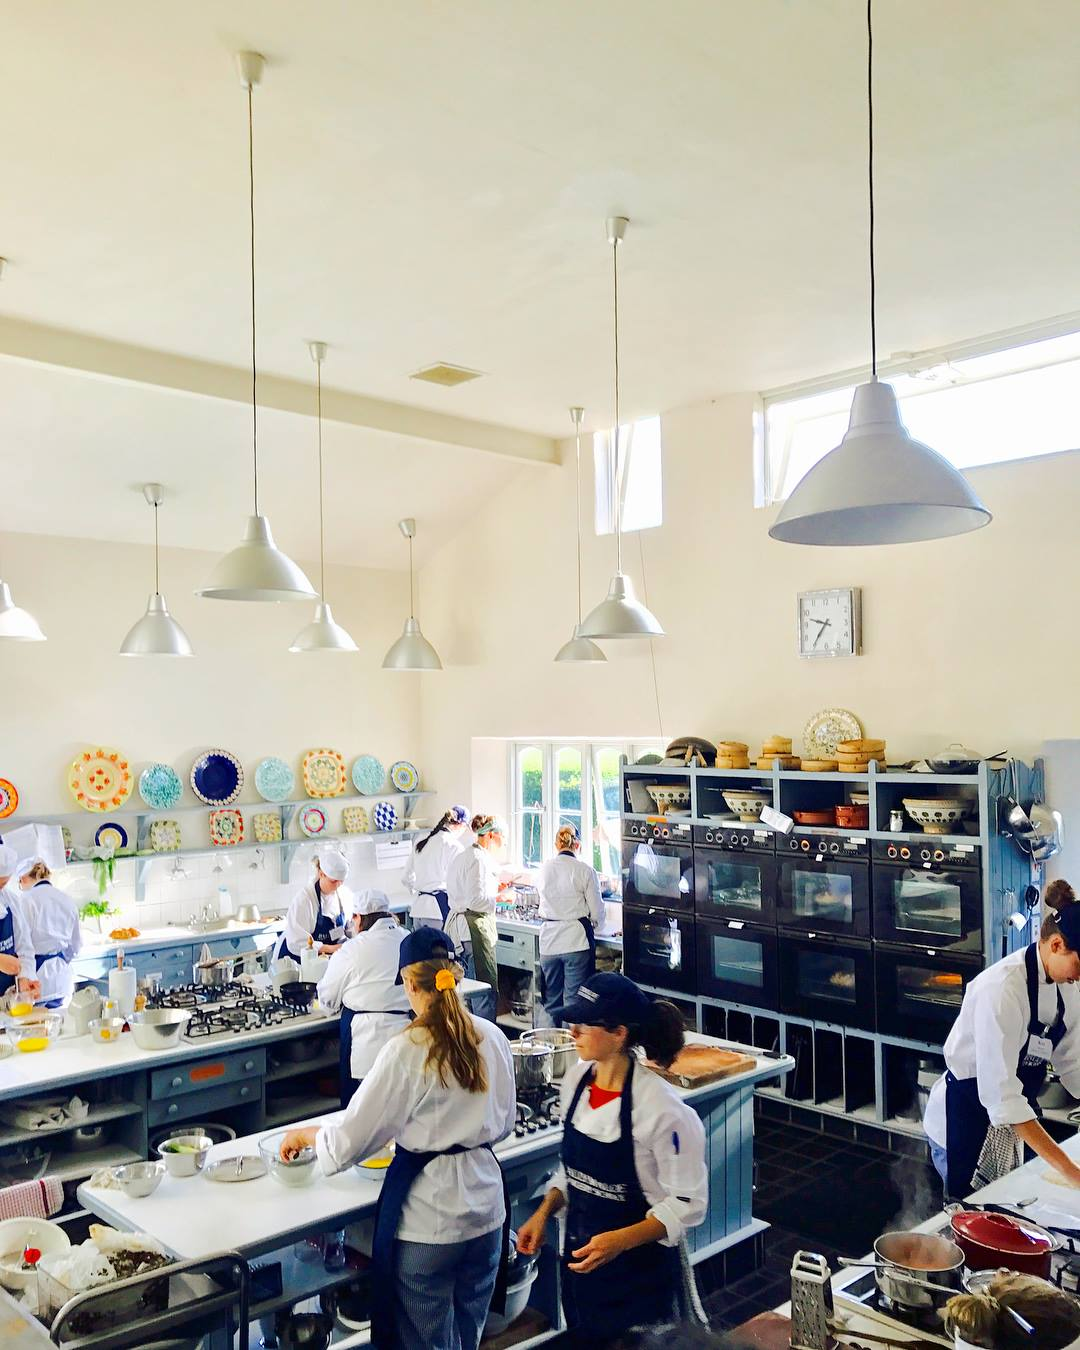 12 week students - bread & chicken - Ballymaloe Cookery School